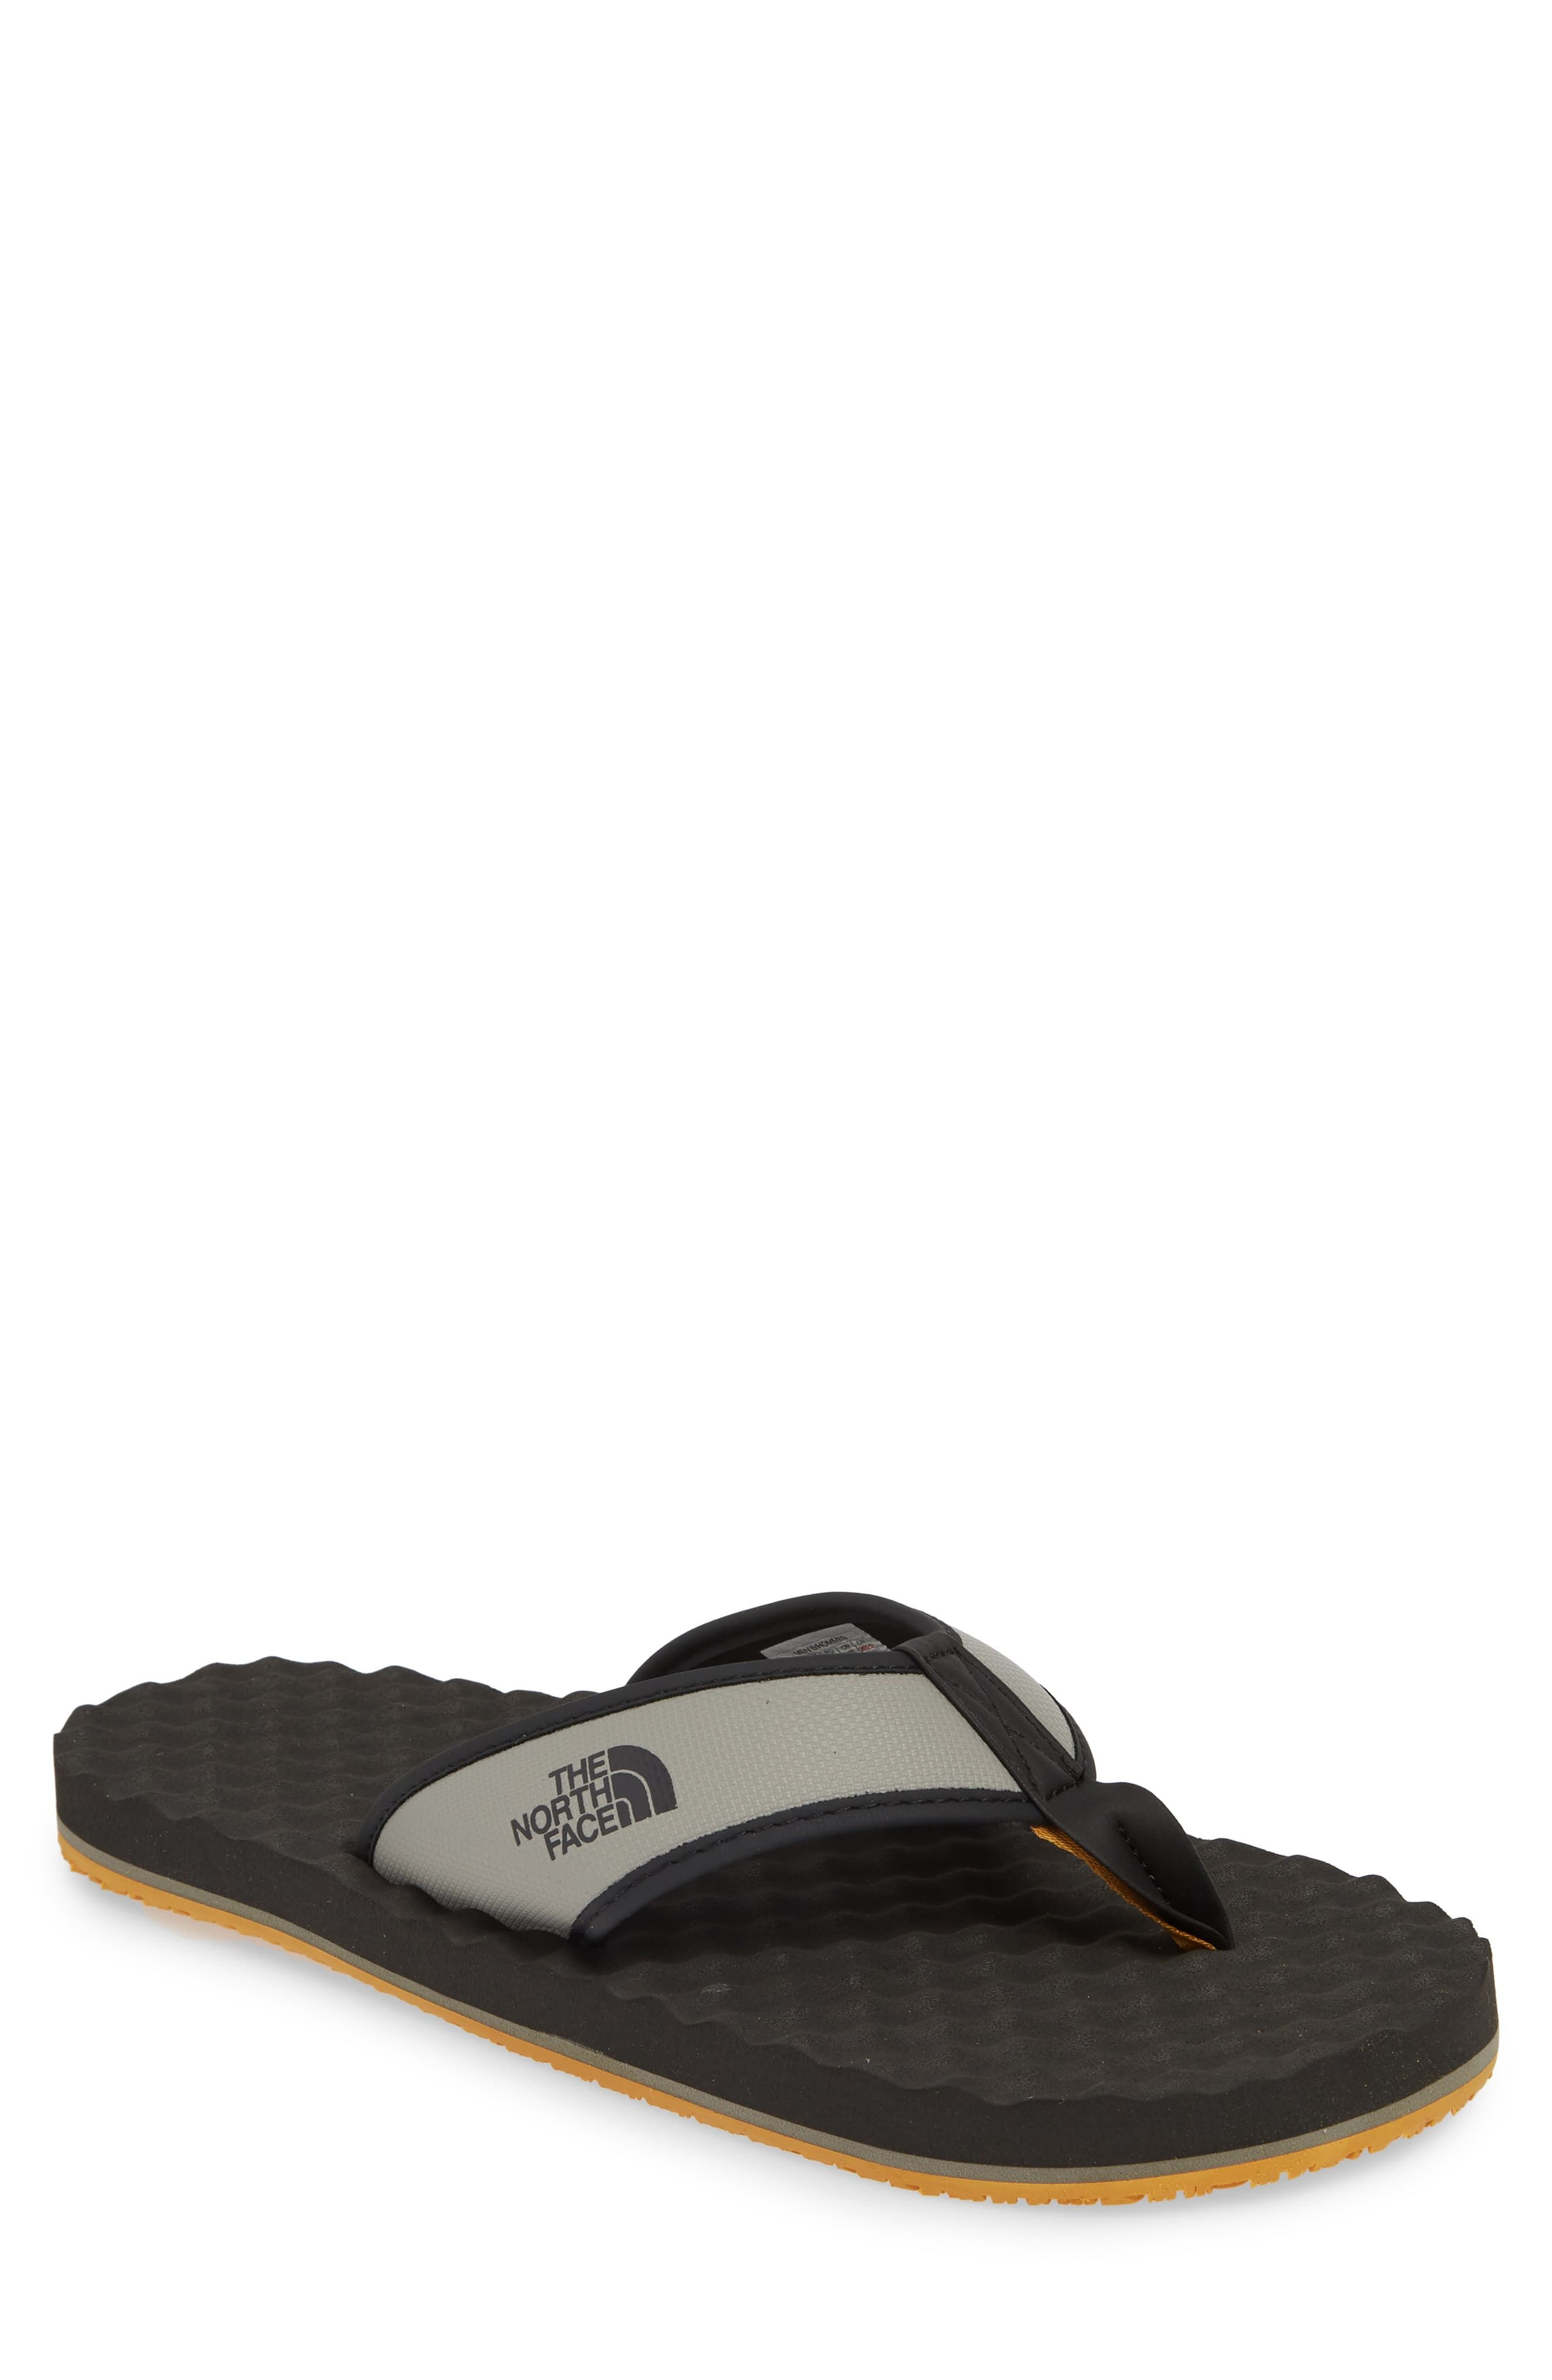 65048163bf7e Men's The North Face 'Base Camp' Water Friendly Flip Flop, Size 14 M - Grey